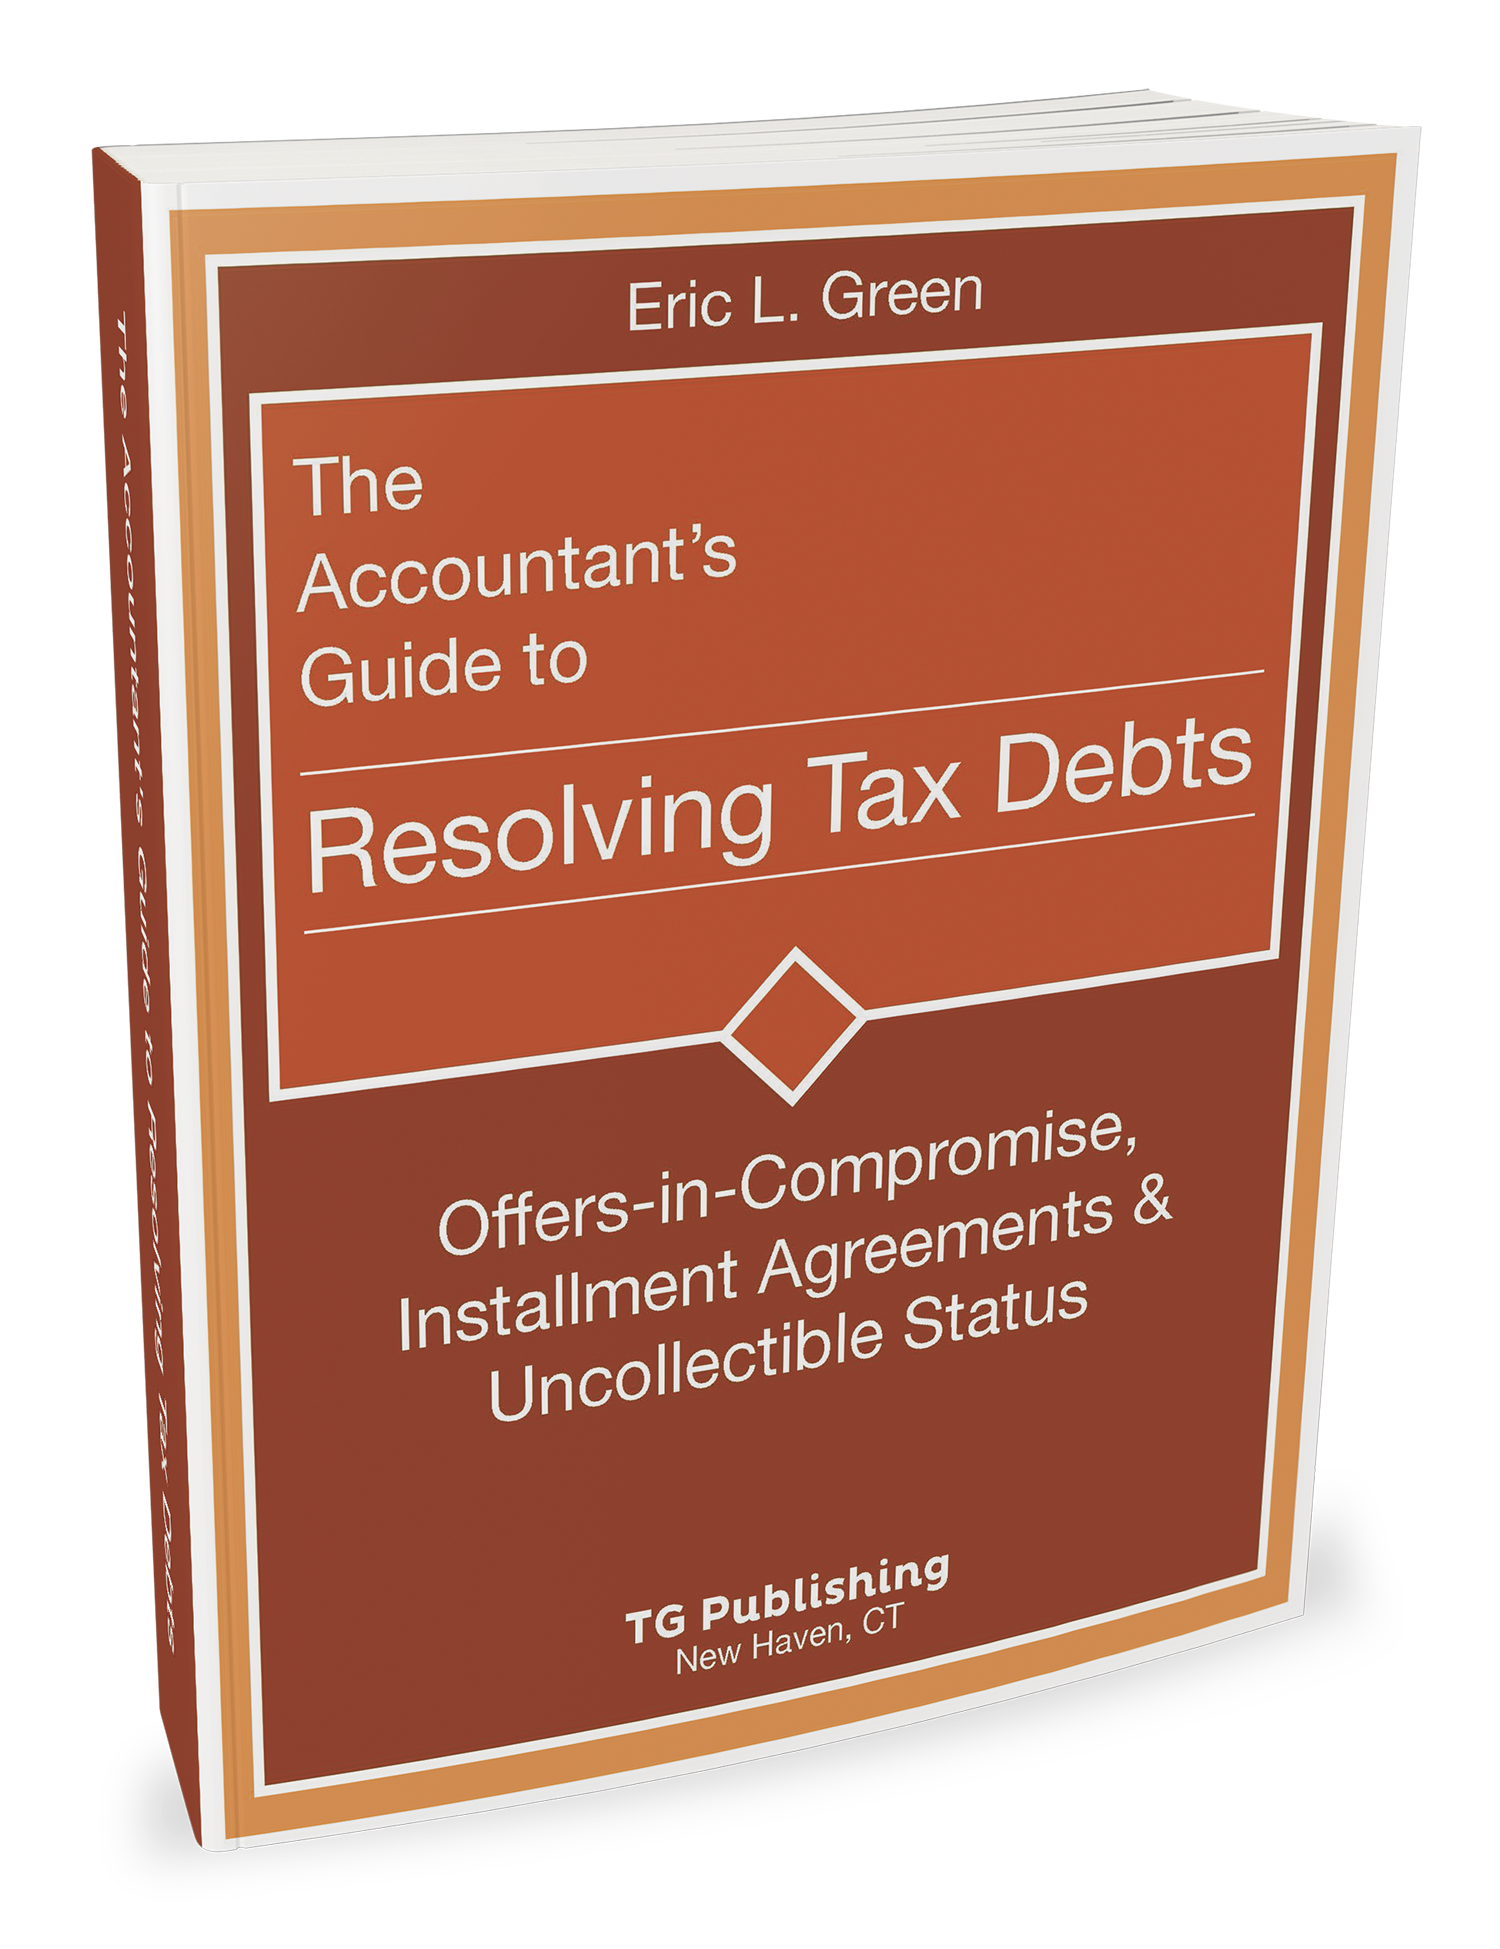 The Accountant's Guide to Resolving Tax Debts - #4756